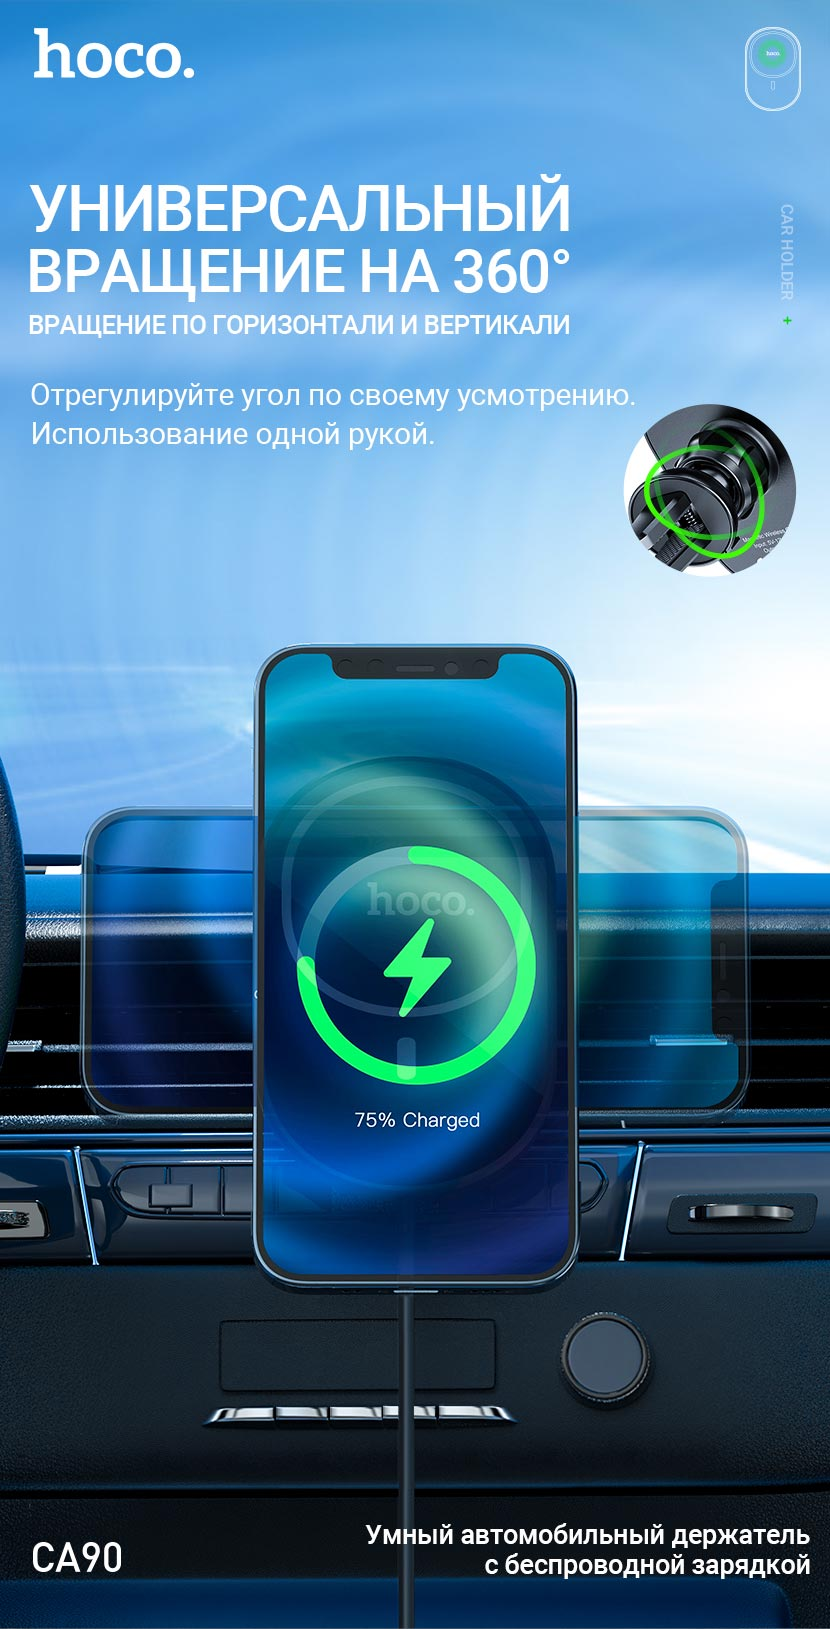 hoco news ca90 powerful magnetic car holder with wireless charging rotation ru